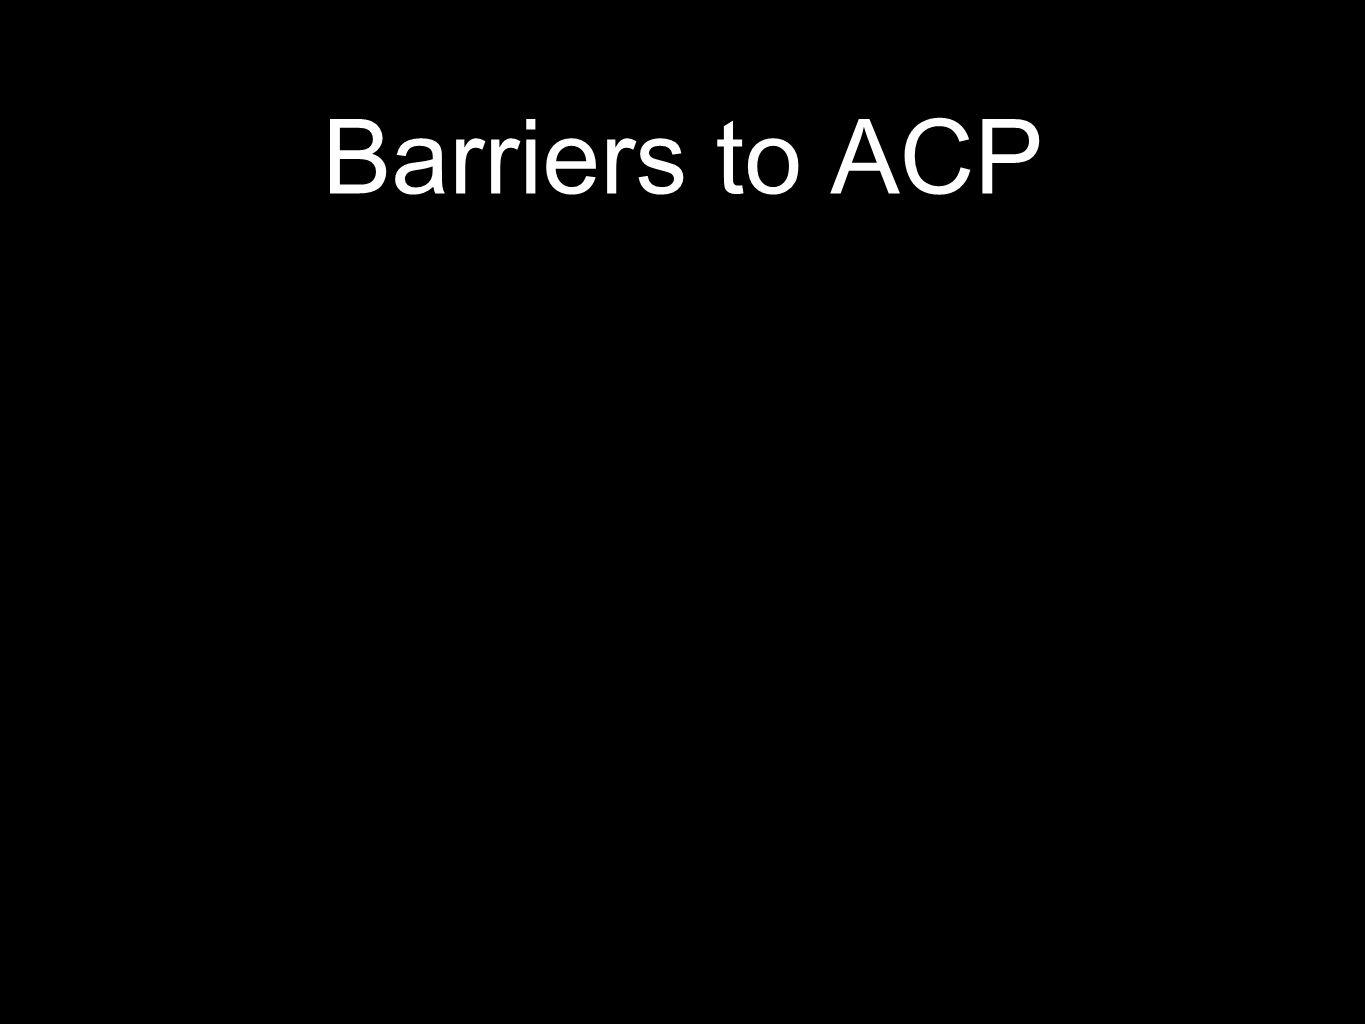 Barriers to ACP